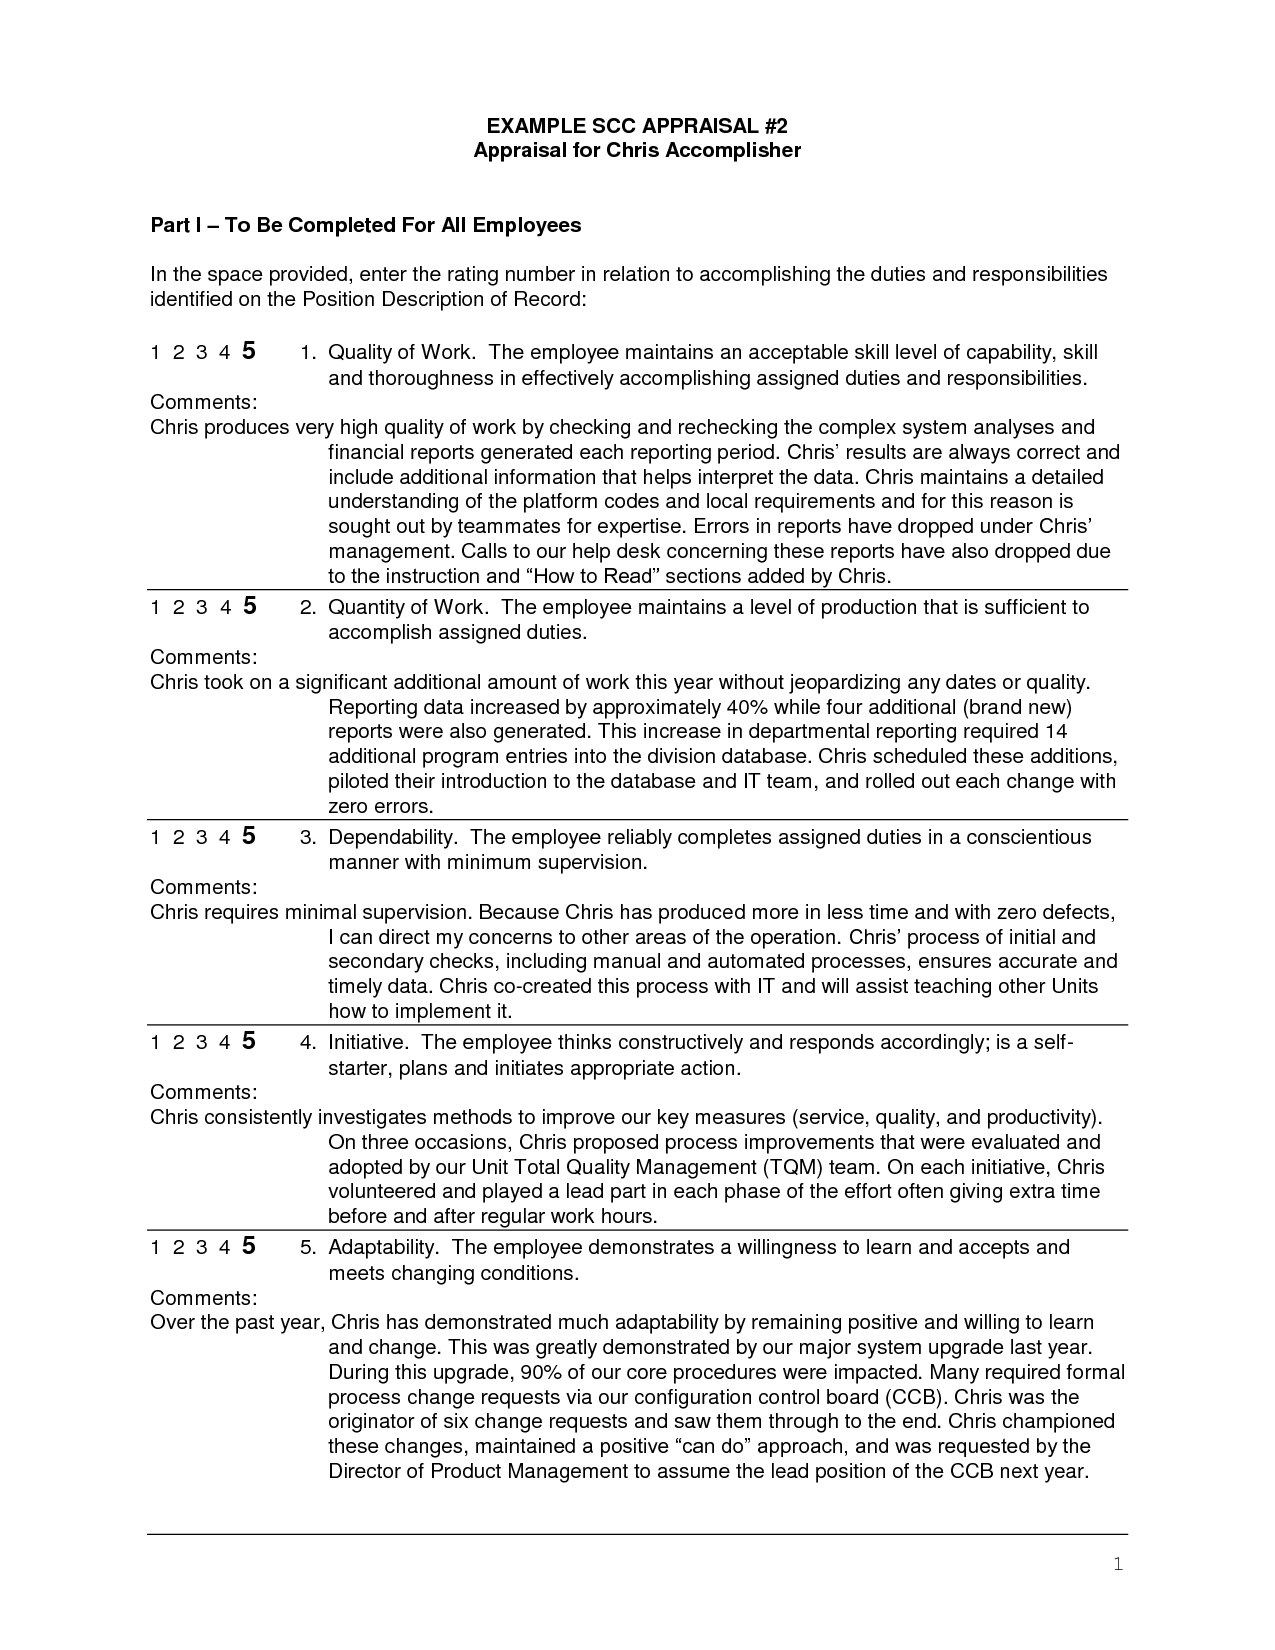 Help write my performance appraisal! Performance Review Examples